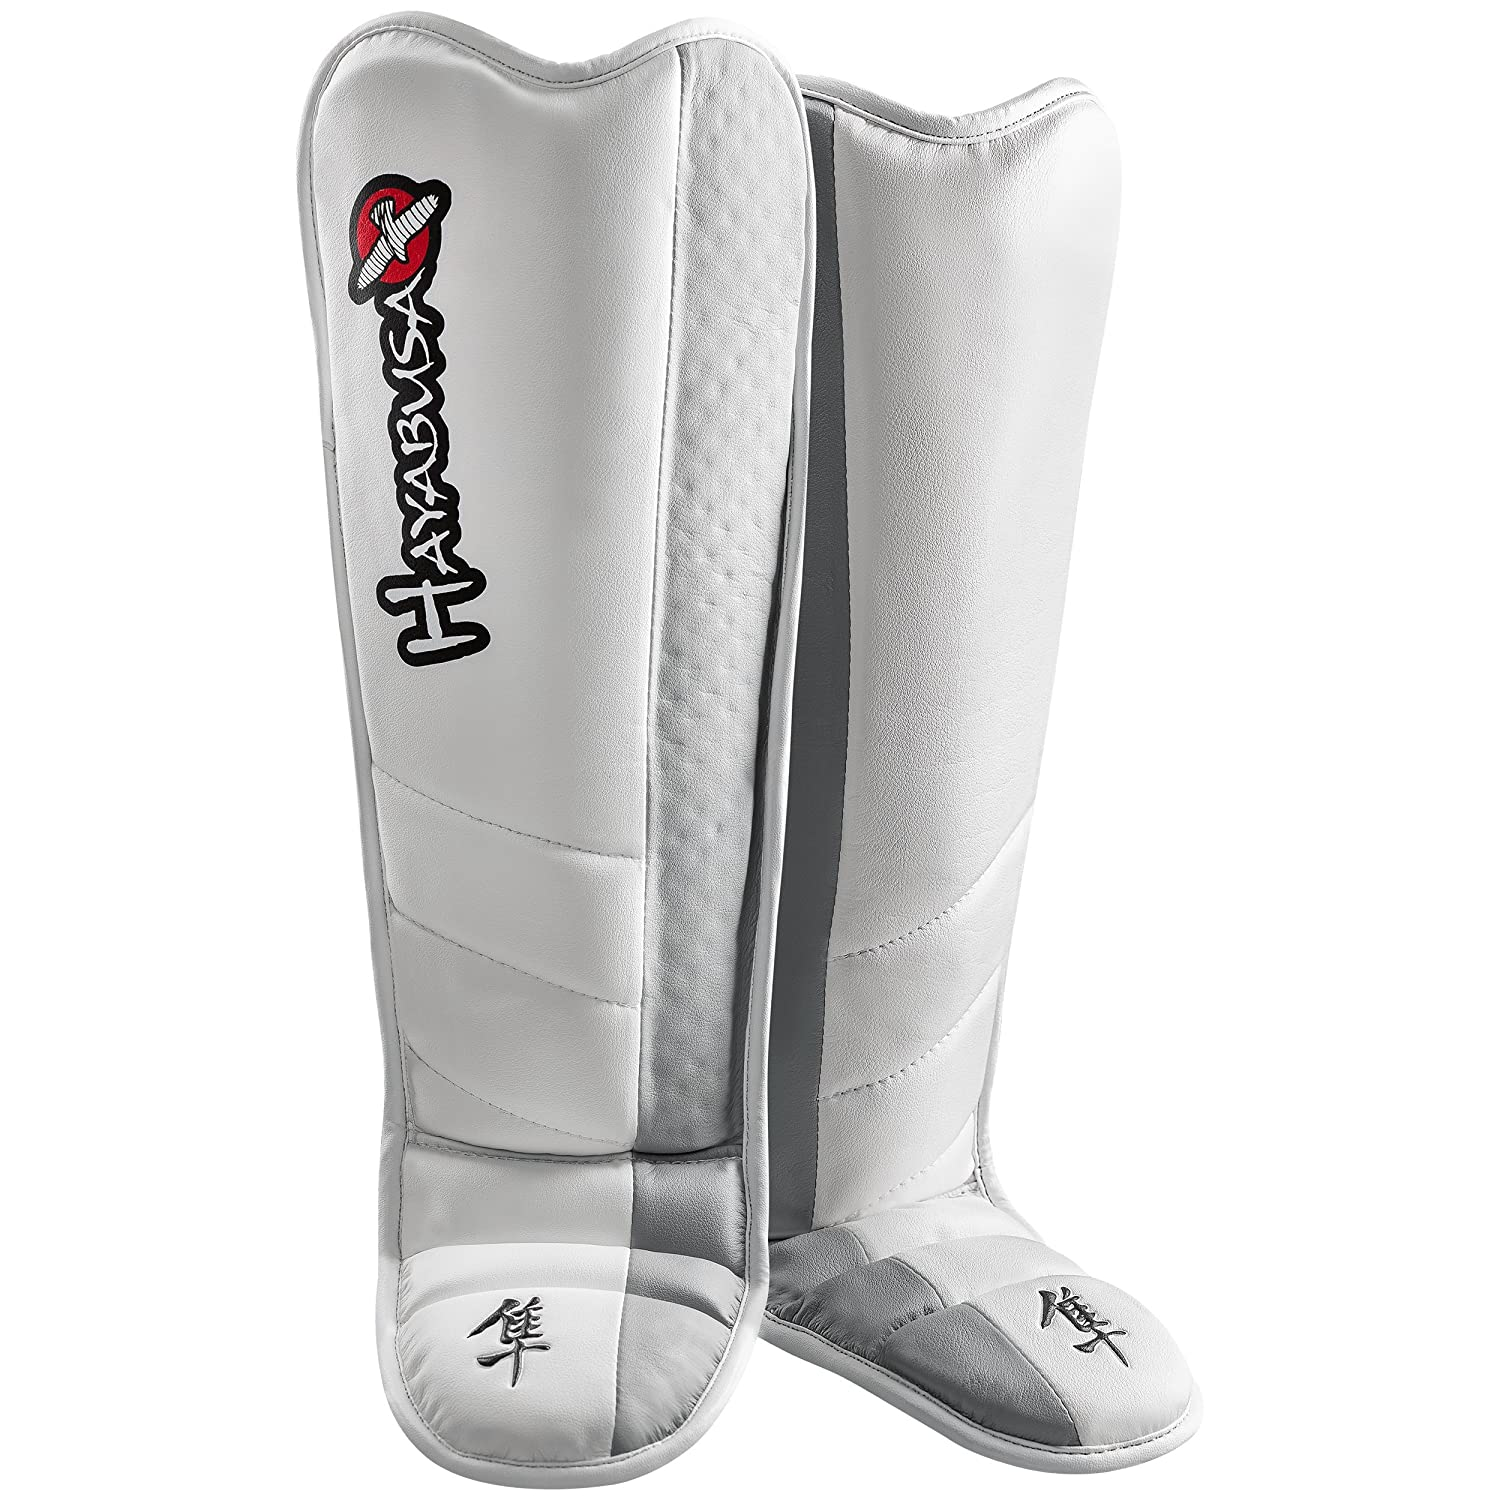 Best Hayabusa Shin Guards - Hayabusa Tokushu Grappling Shin Guards